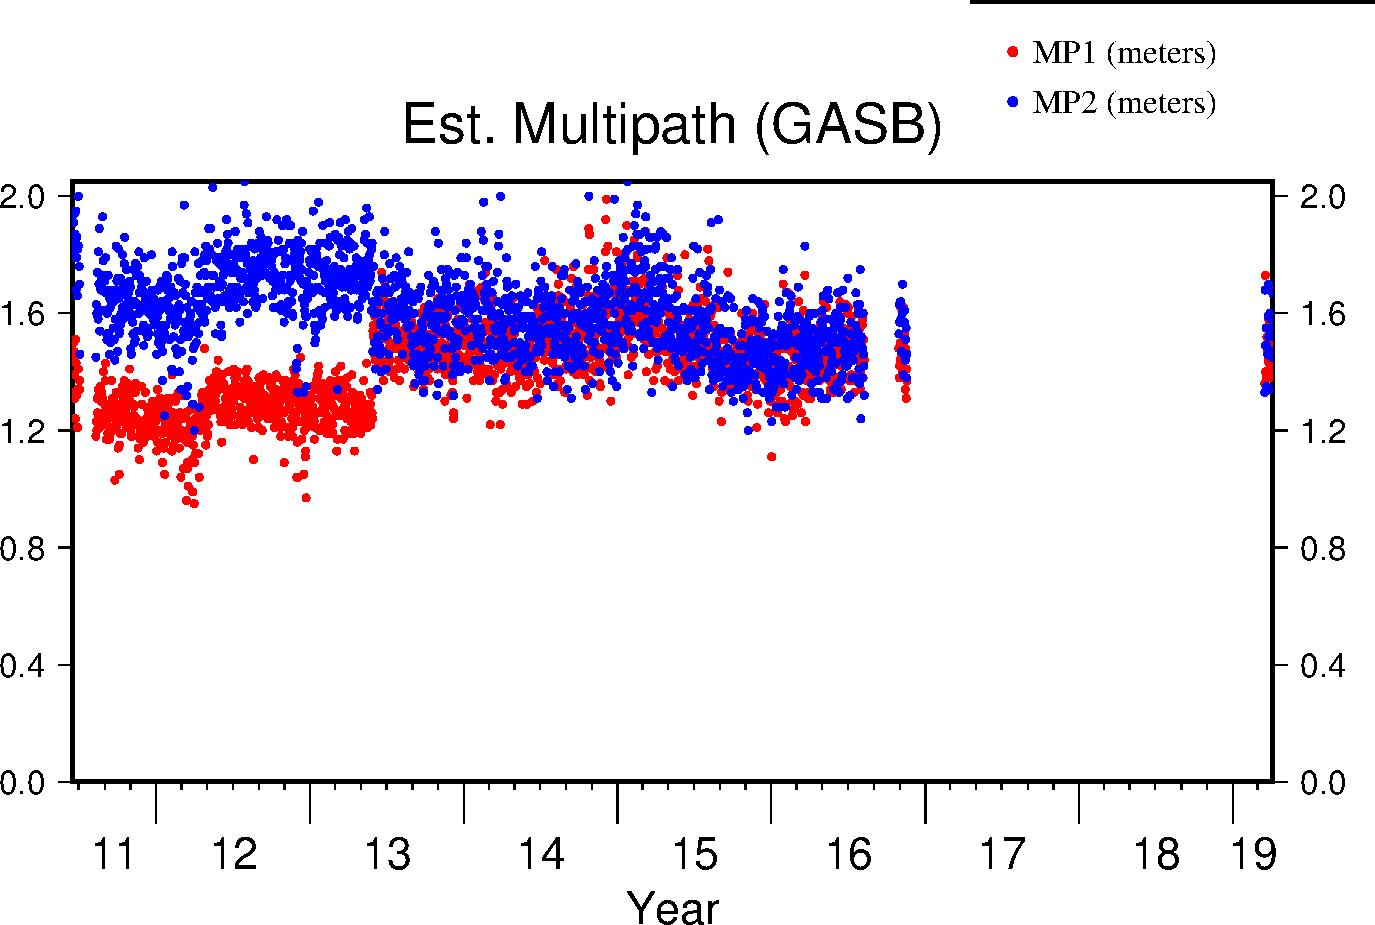 GASB multipath lifetime